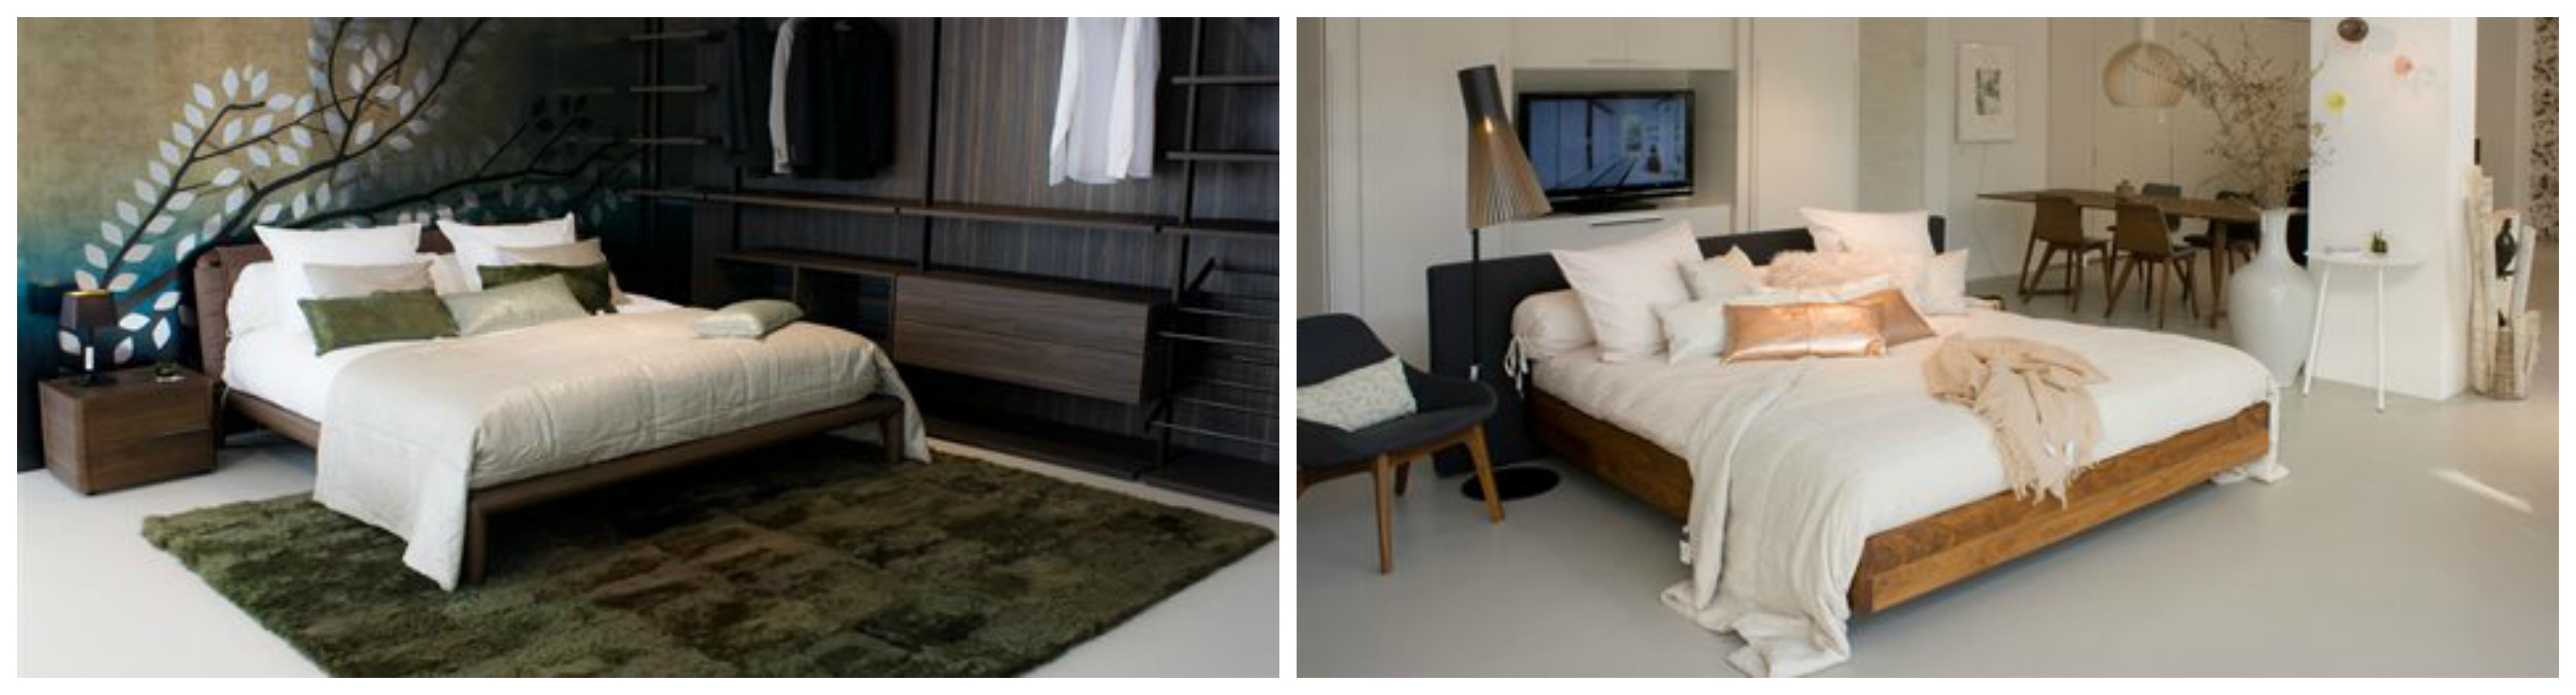 Slaapkamer design   pagina 2 van 2   blog van bed habits, de ...